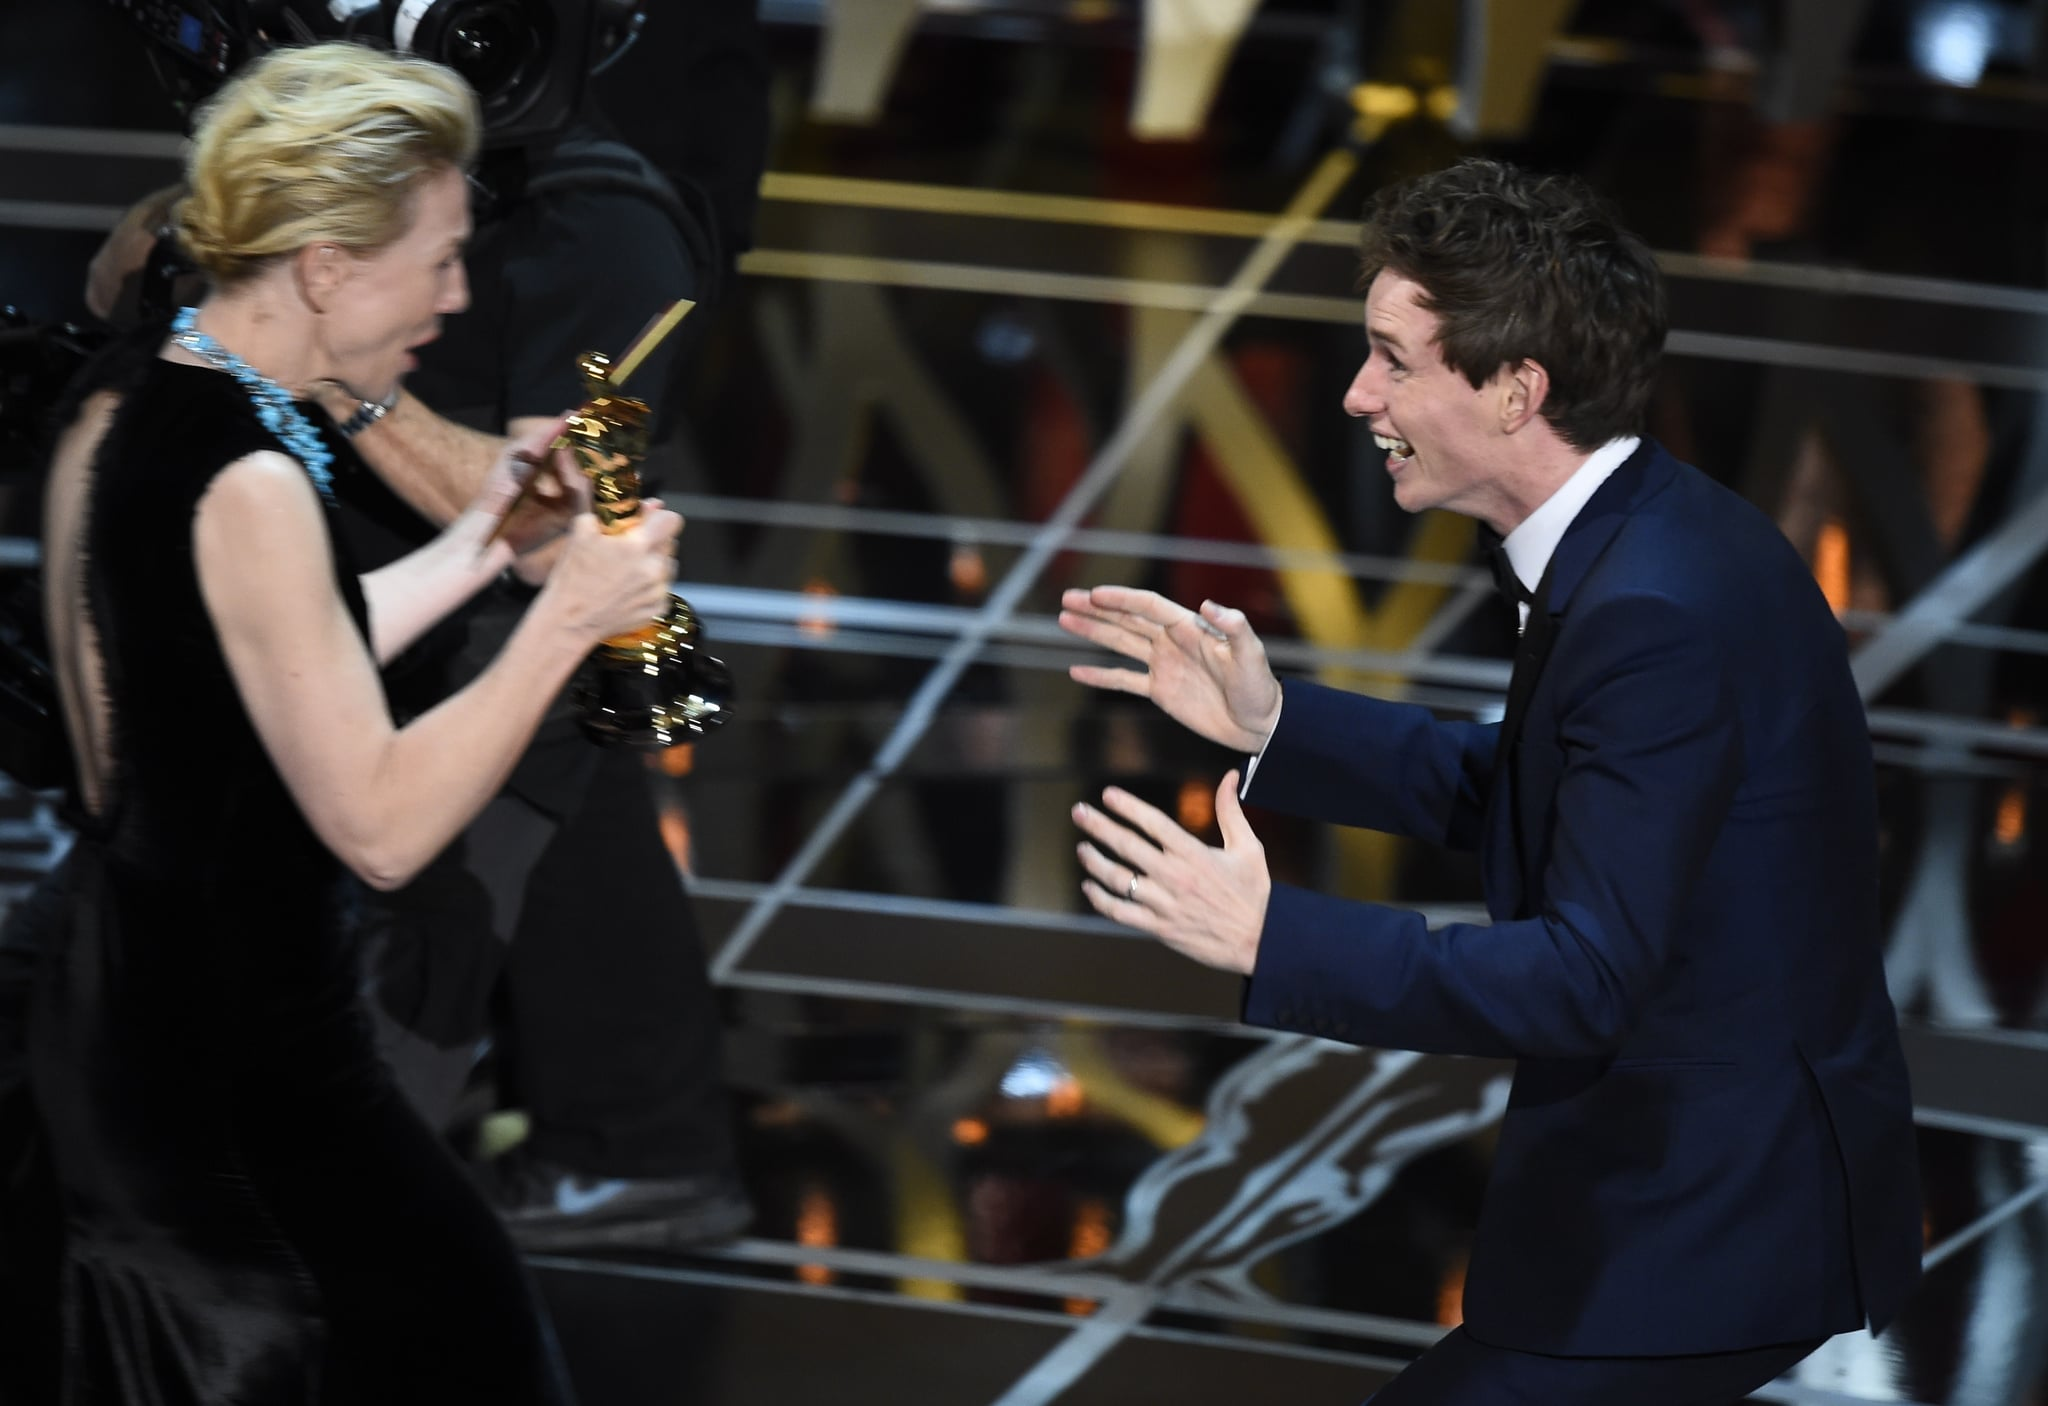 Winner for Best Actor Eddie Redmayne accepts his award from Cate Blanchett on stage at the 87th Oscars February 22, 2015 in Hollywood, California. AFP PHOTO / Robyn BECK        (Photo credit should read ROBYN BECK/AFP/Getty Images)